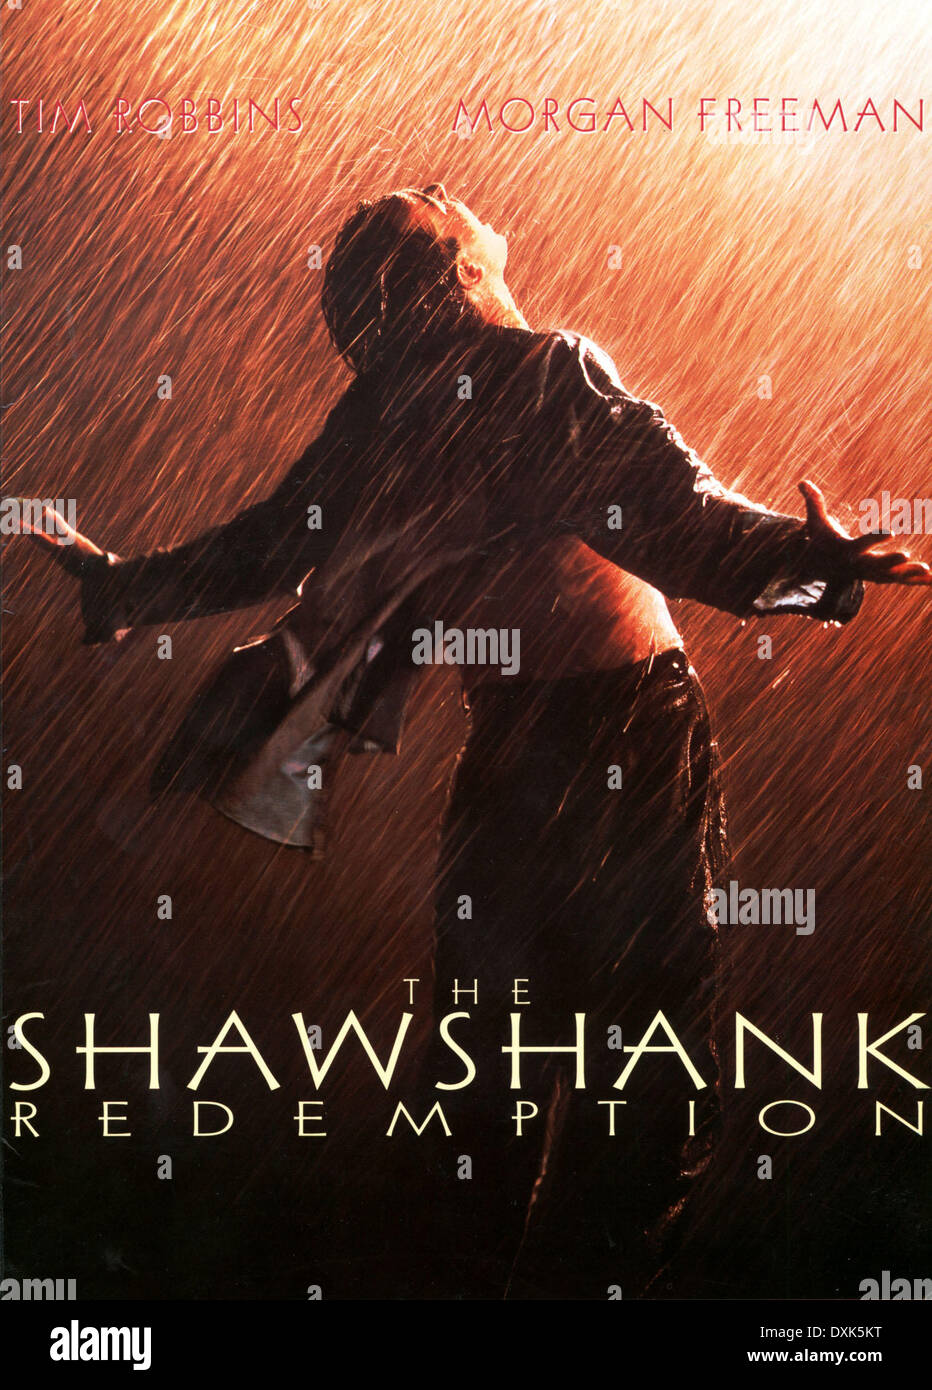 THE SHAWSHANK REDEMPTION - Stock Image